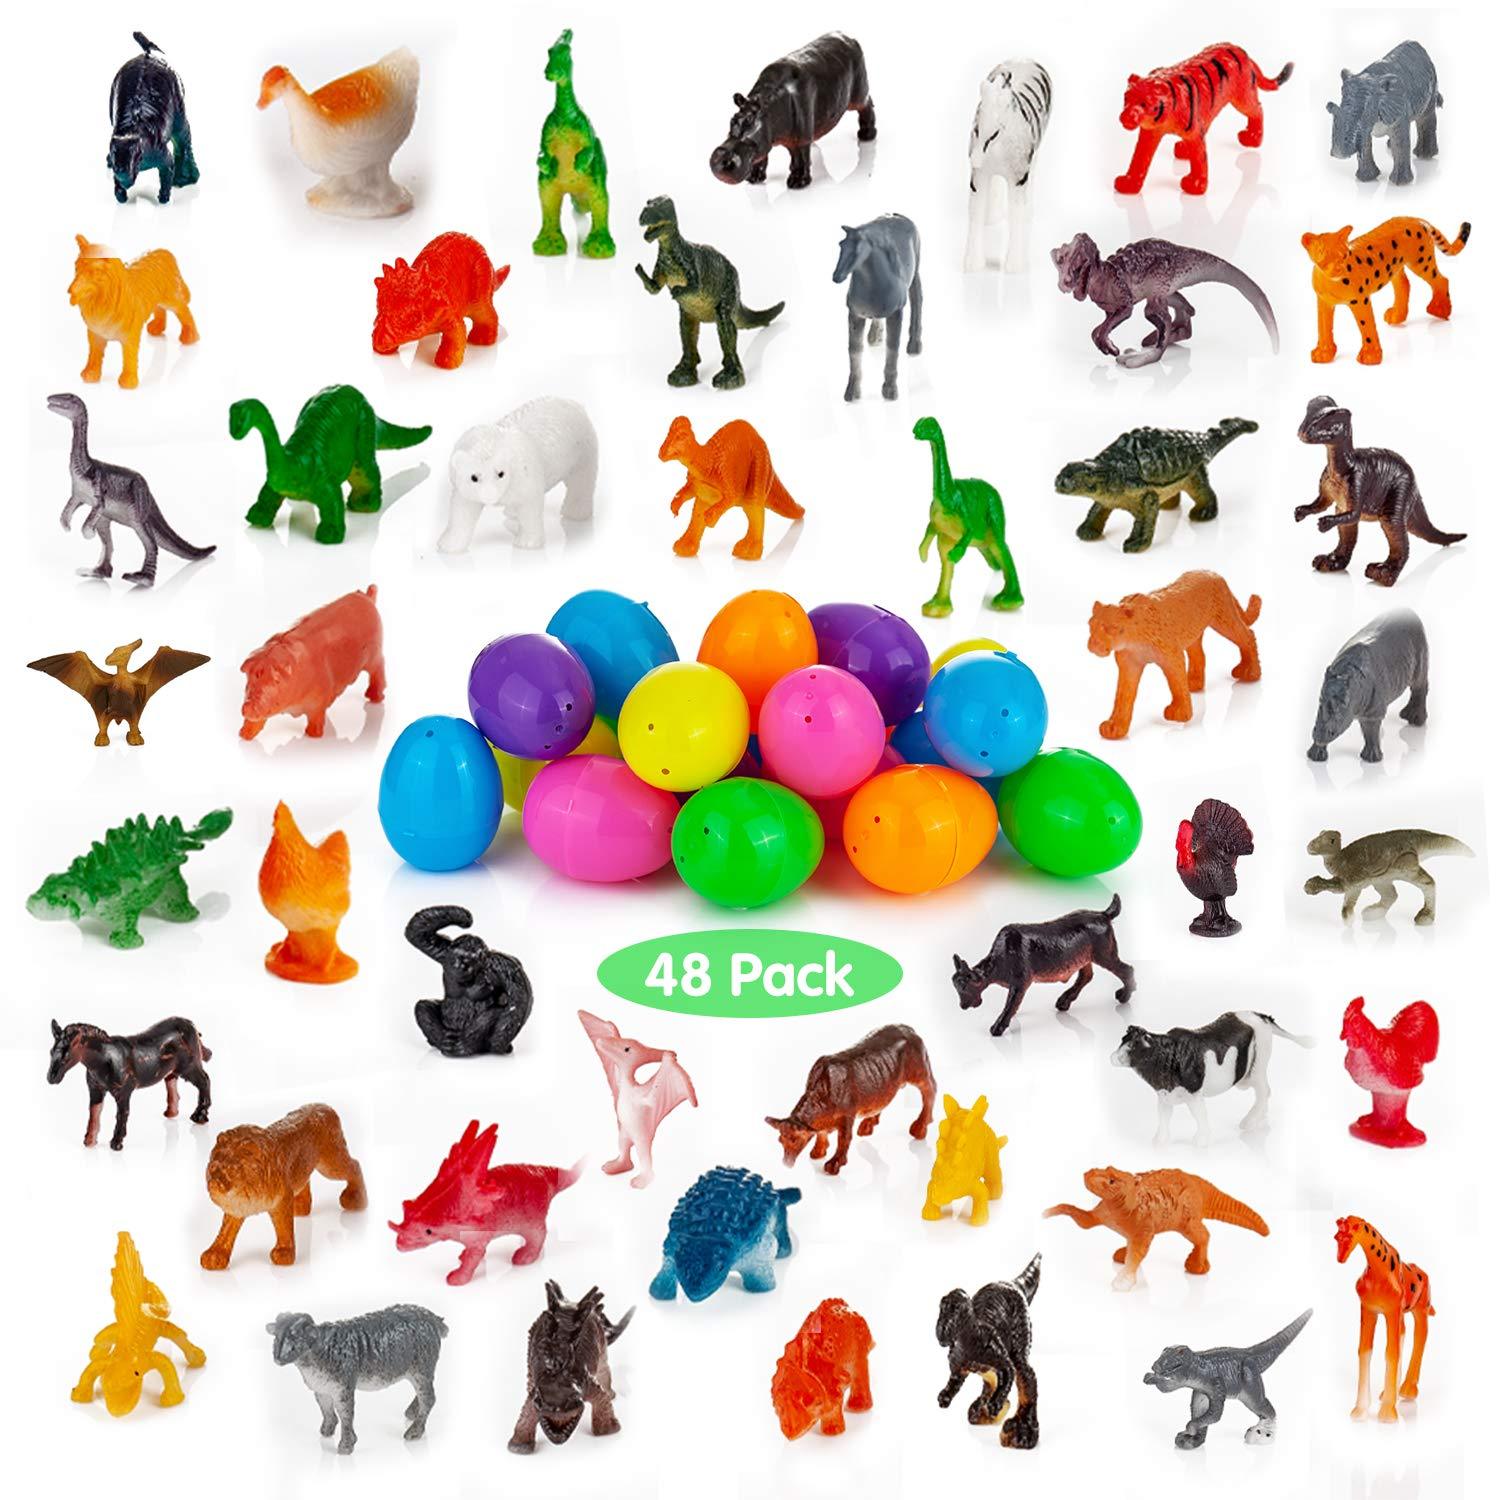 Easter Egg Stuffers Fillers YIHONG 48 Pcs Easter Eggs Prefilled with Assorted Natural World Animal Figures Bright Colorful Plastic Surprise Eggs for Kids Party Favors